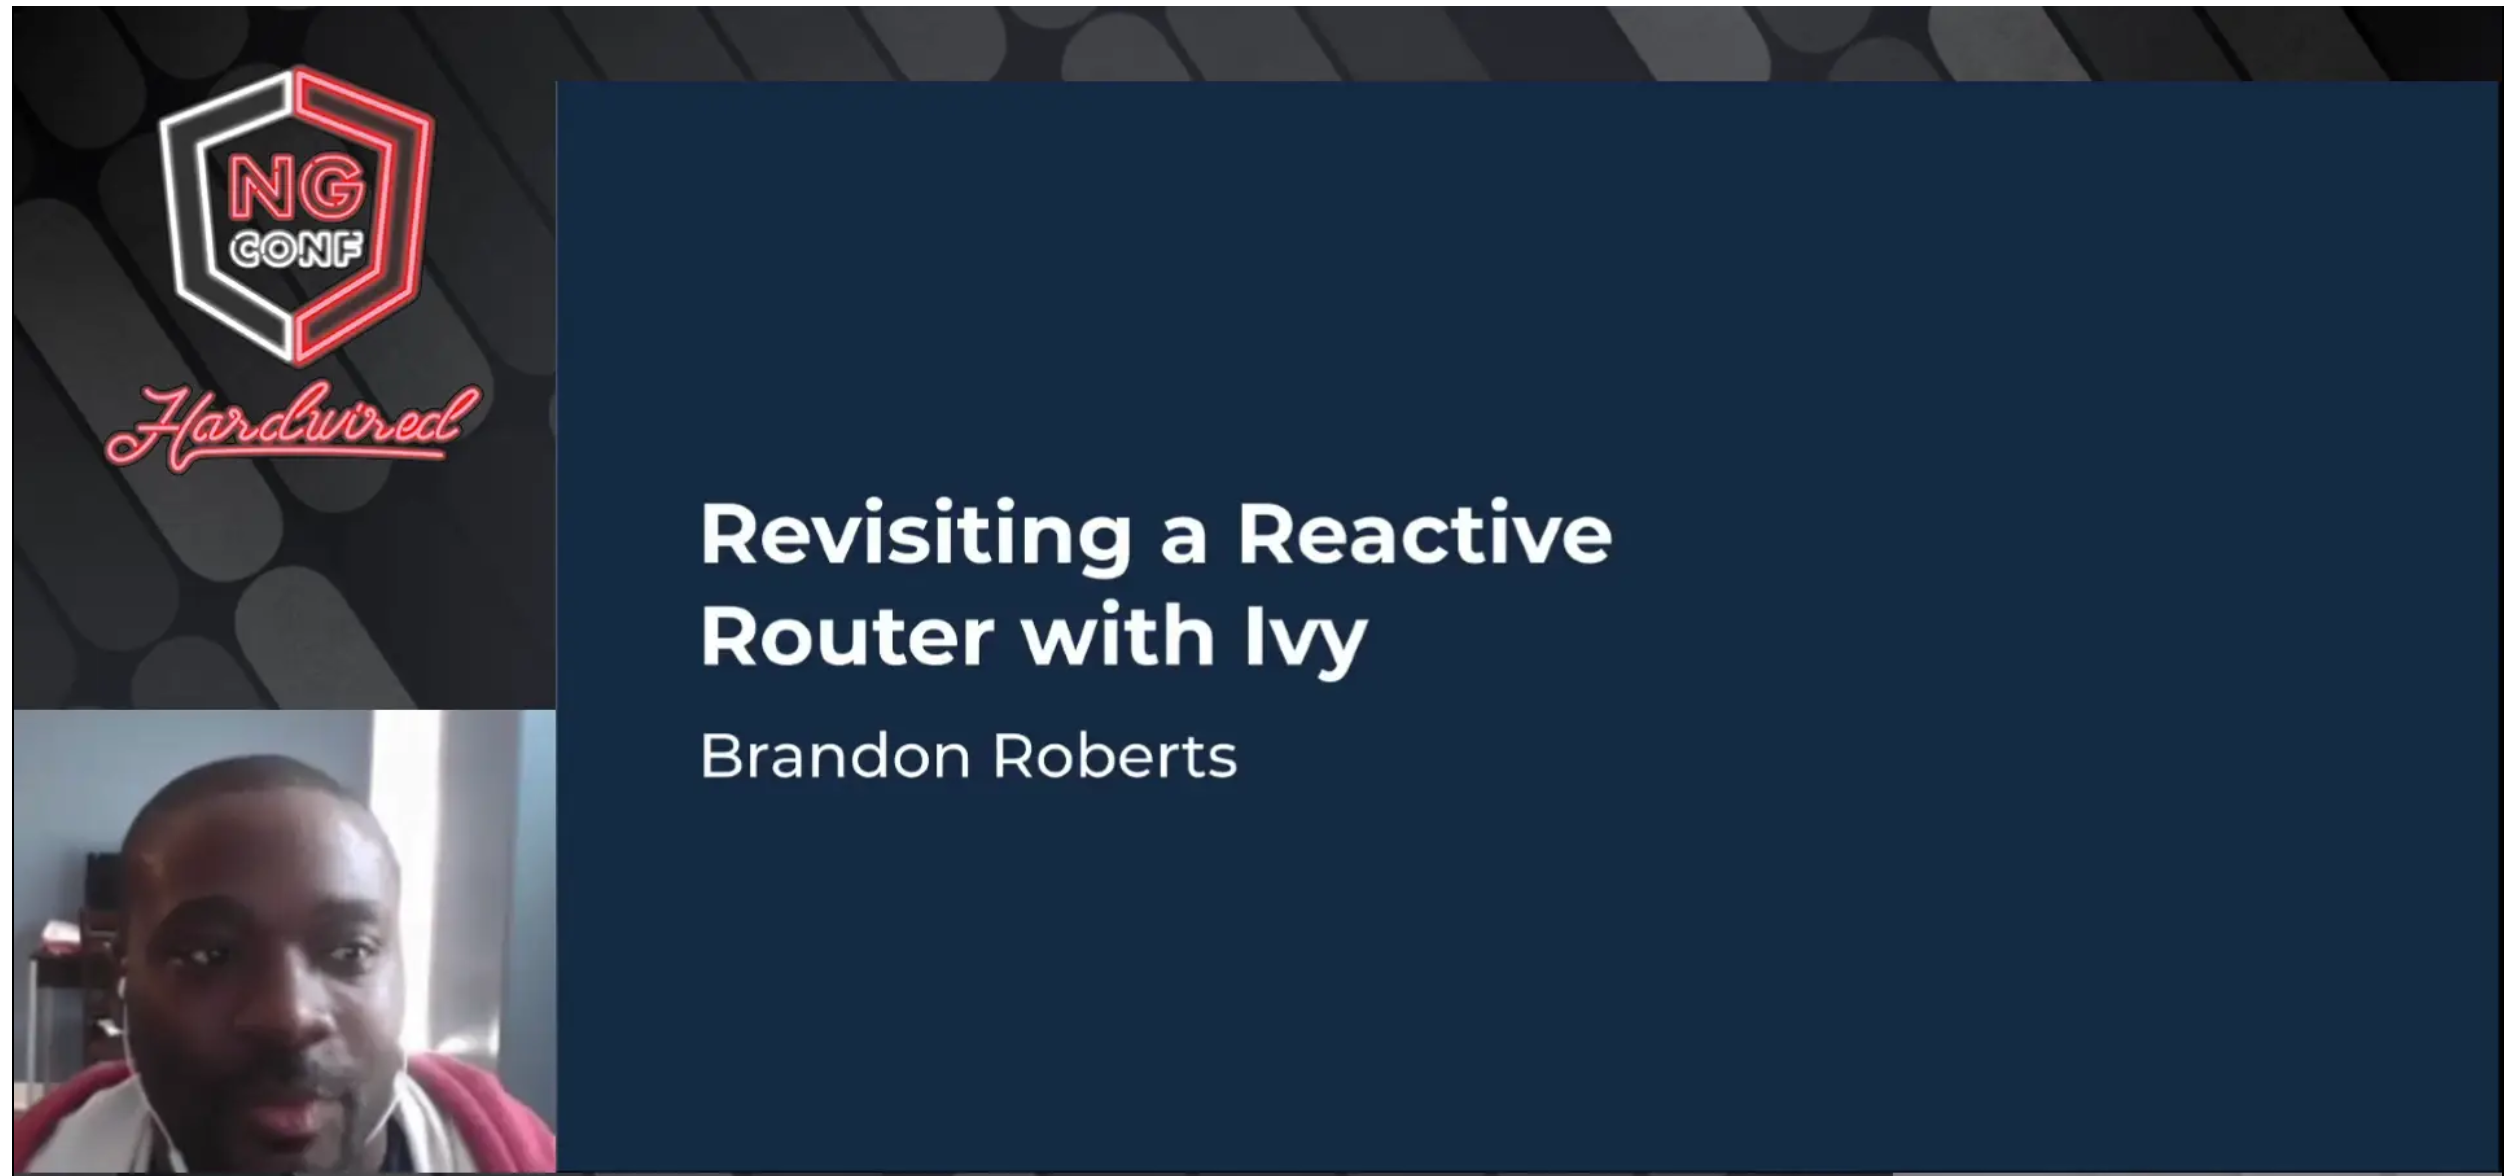 Revisiting a Reactive Router with Ivy